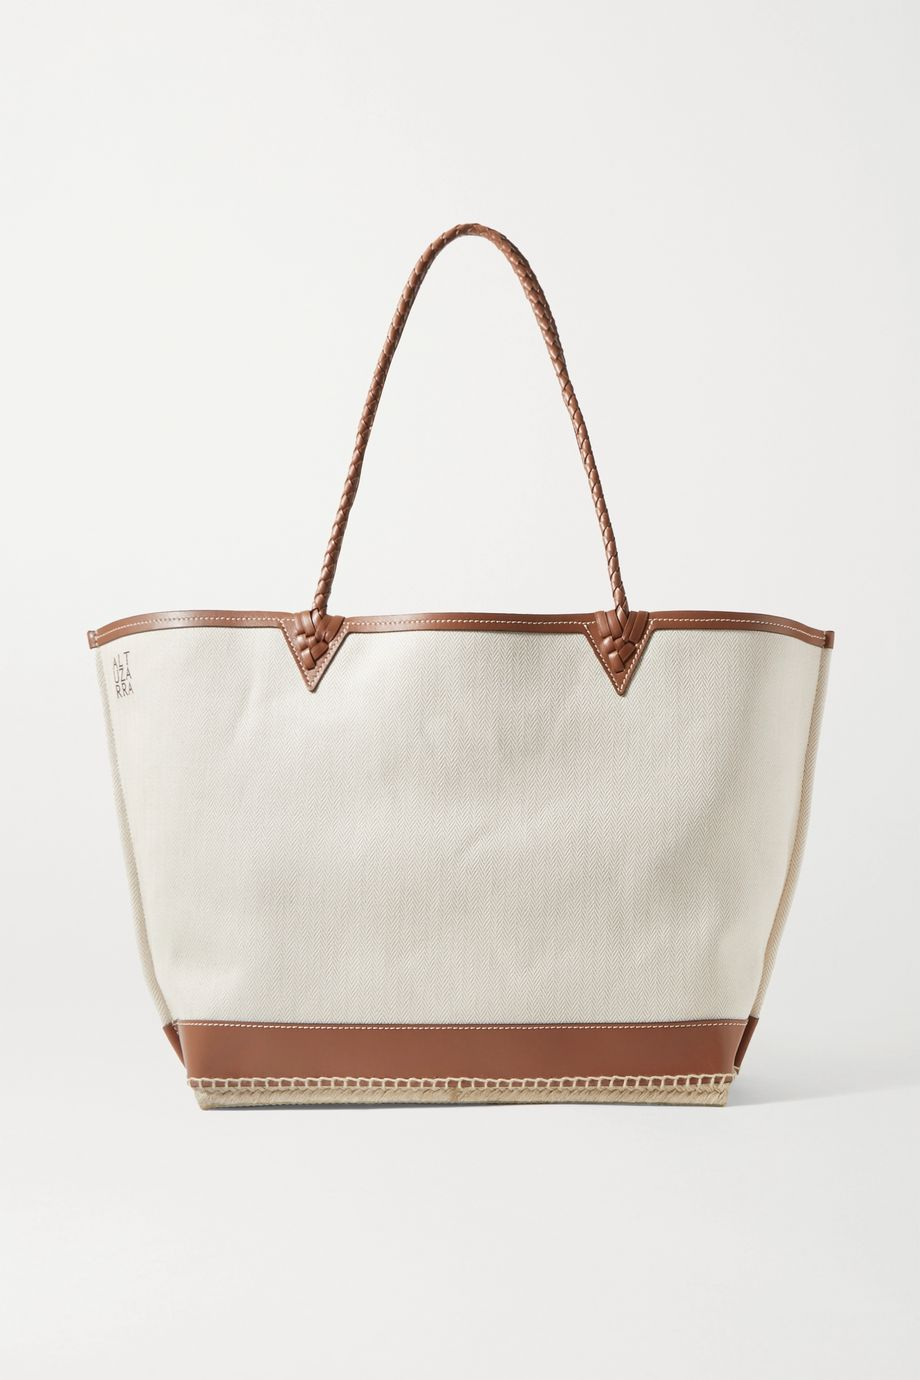 Altuzarra Espadrille large leather and jute-trimmed canvas tote